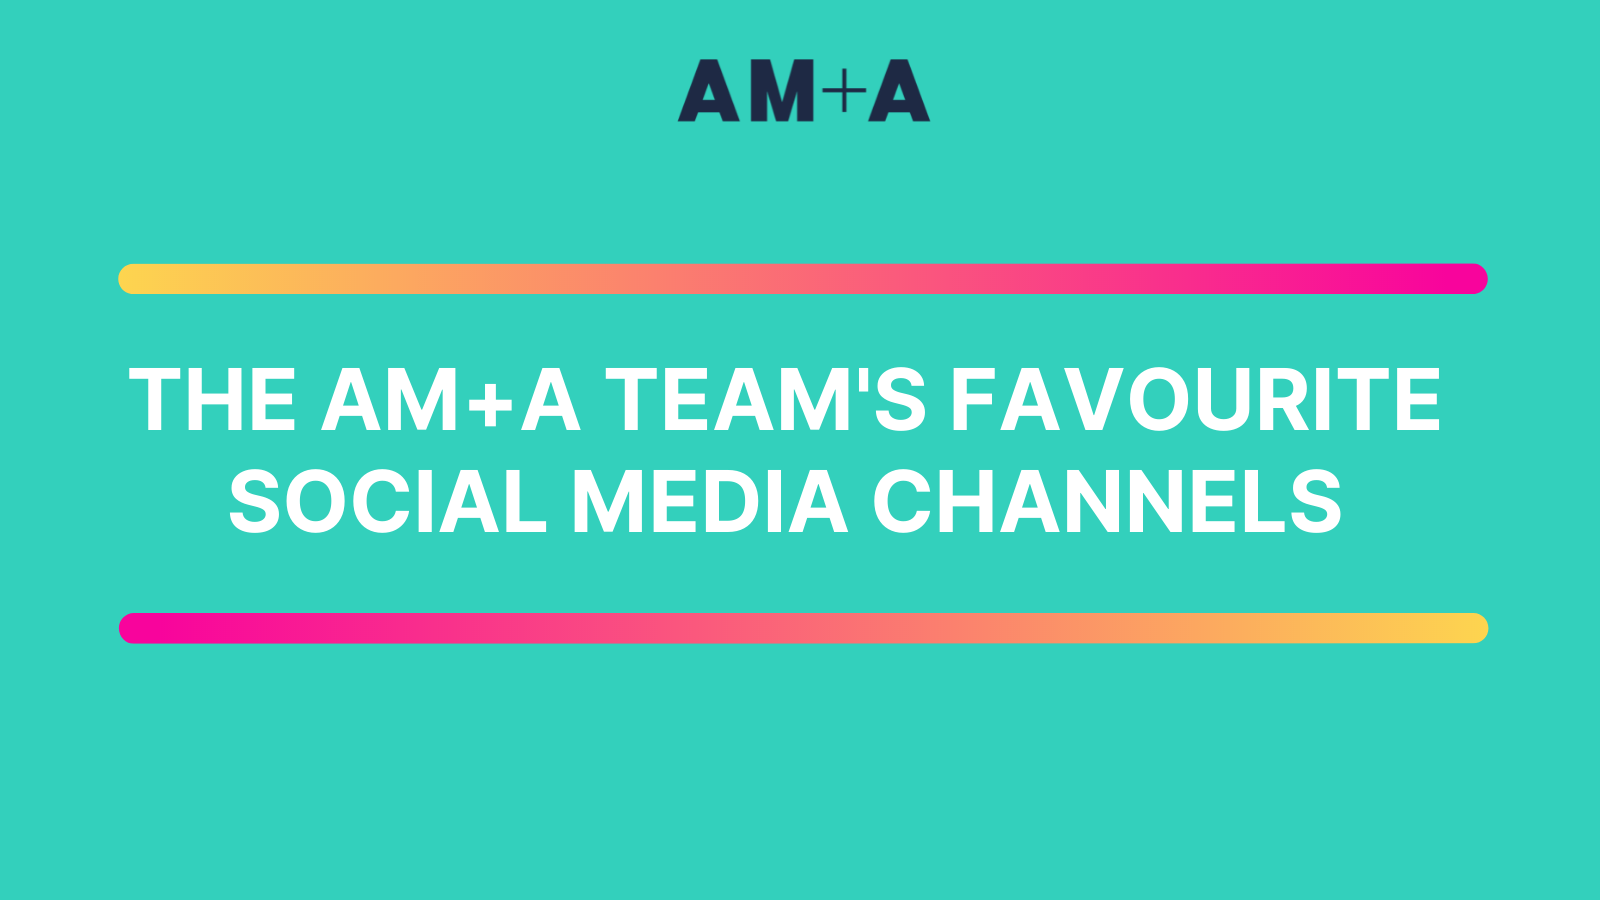 An insight into the AM+A team's favourite social media channels